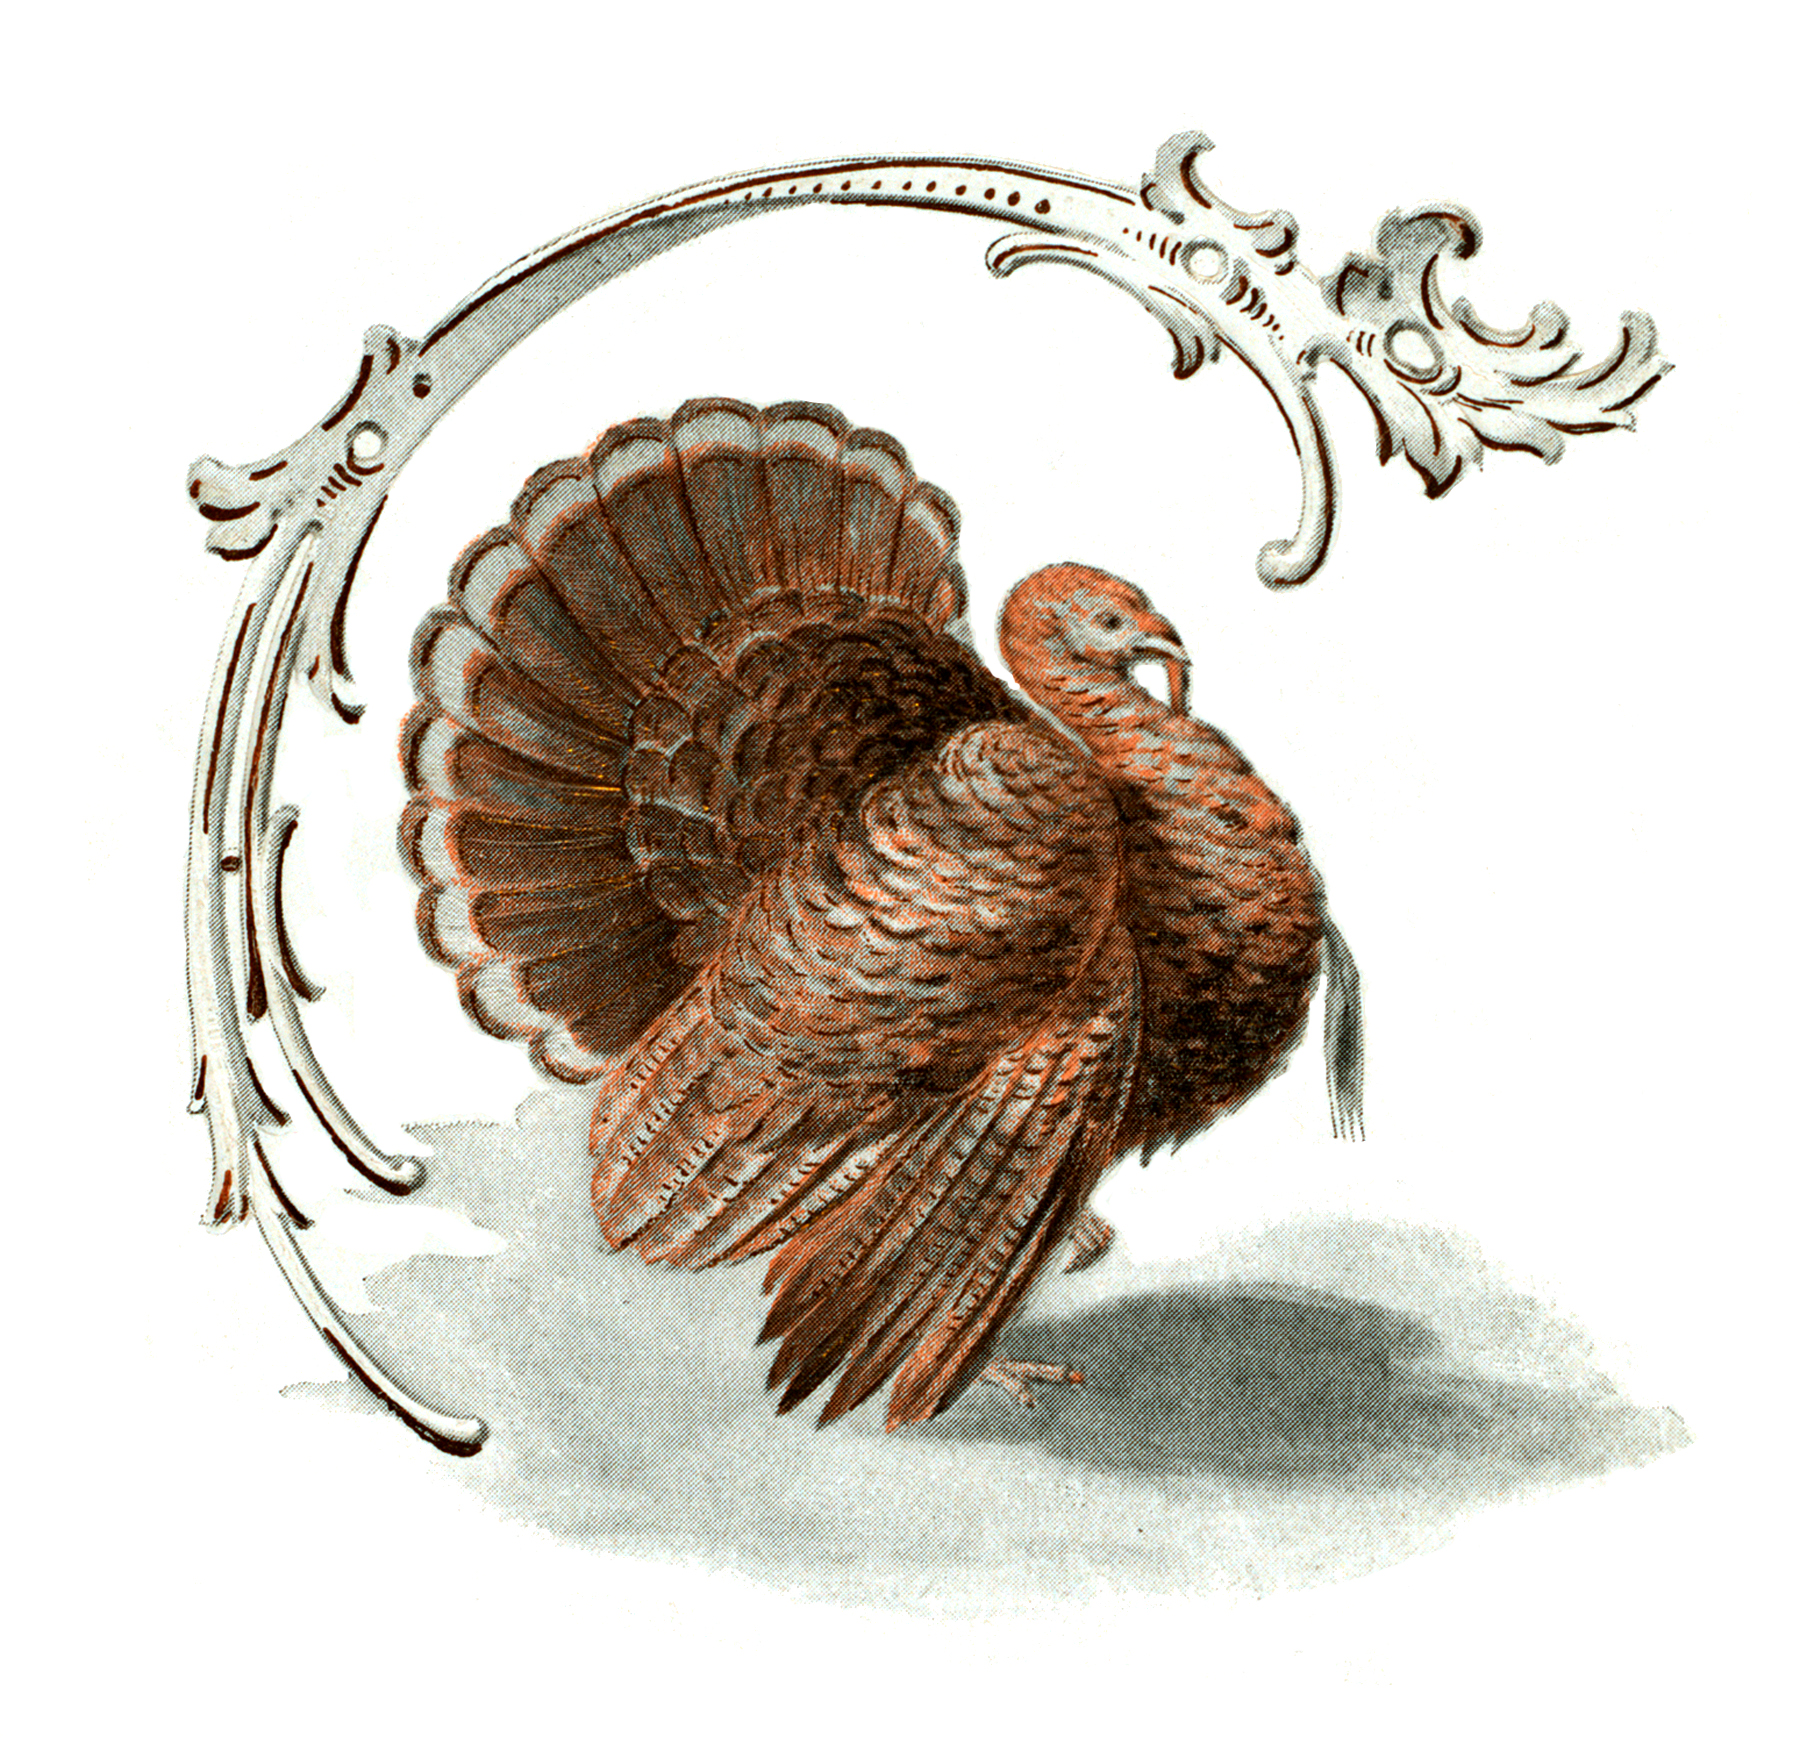 Public Domain Turkey Image